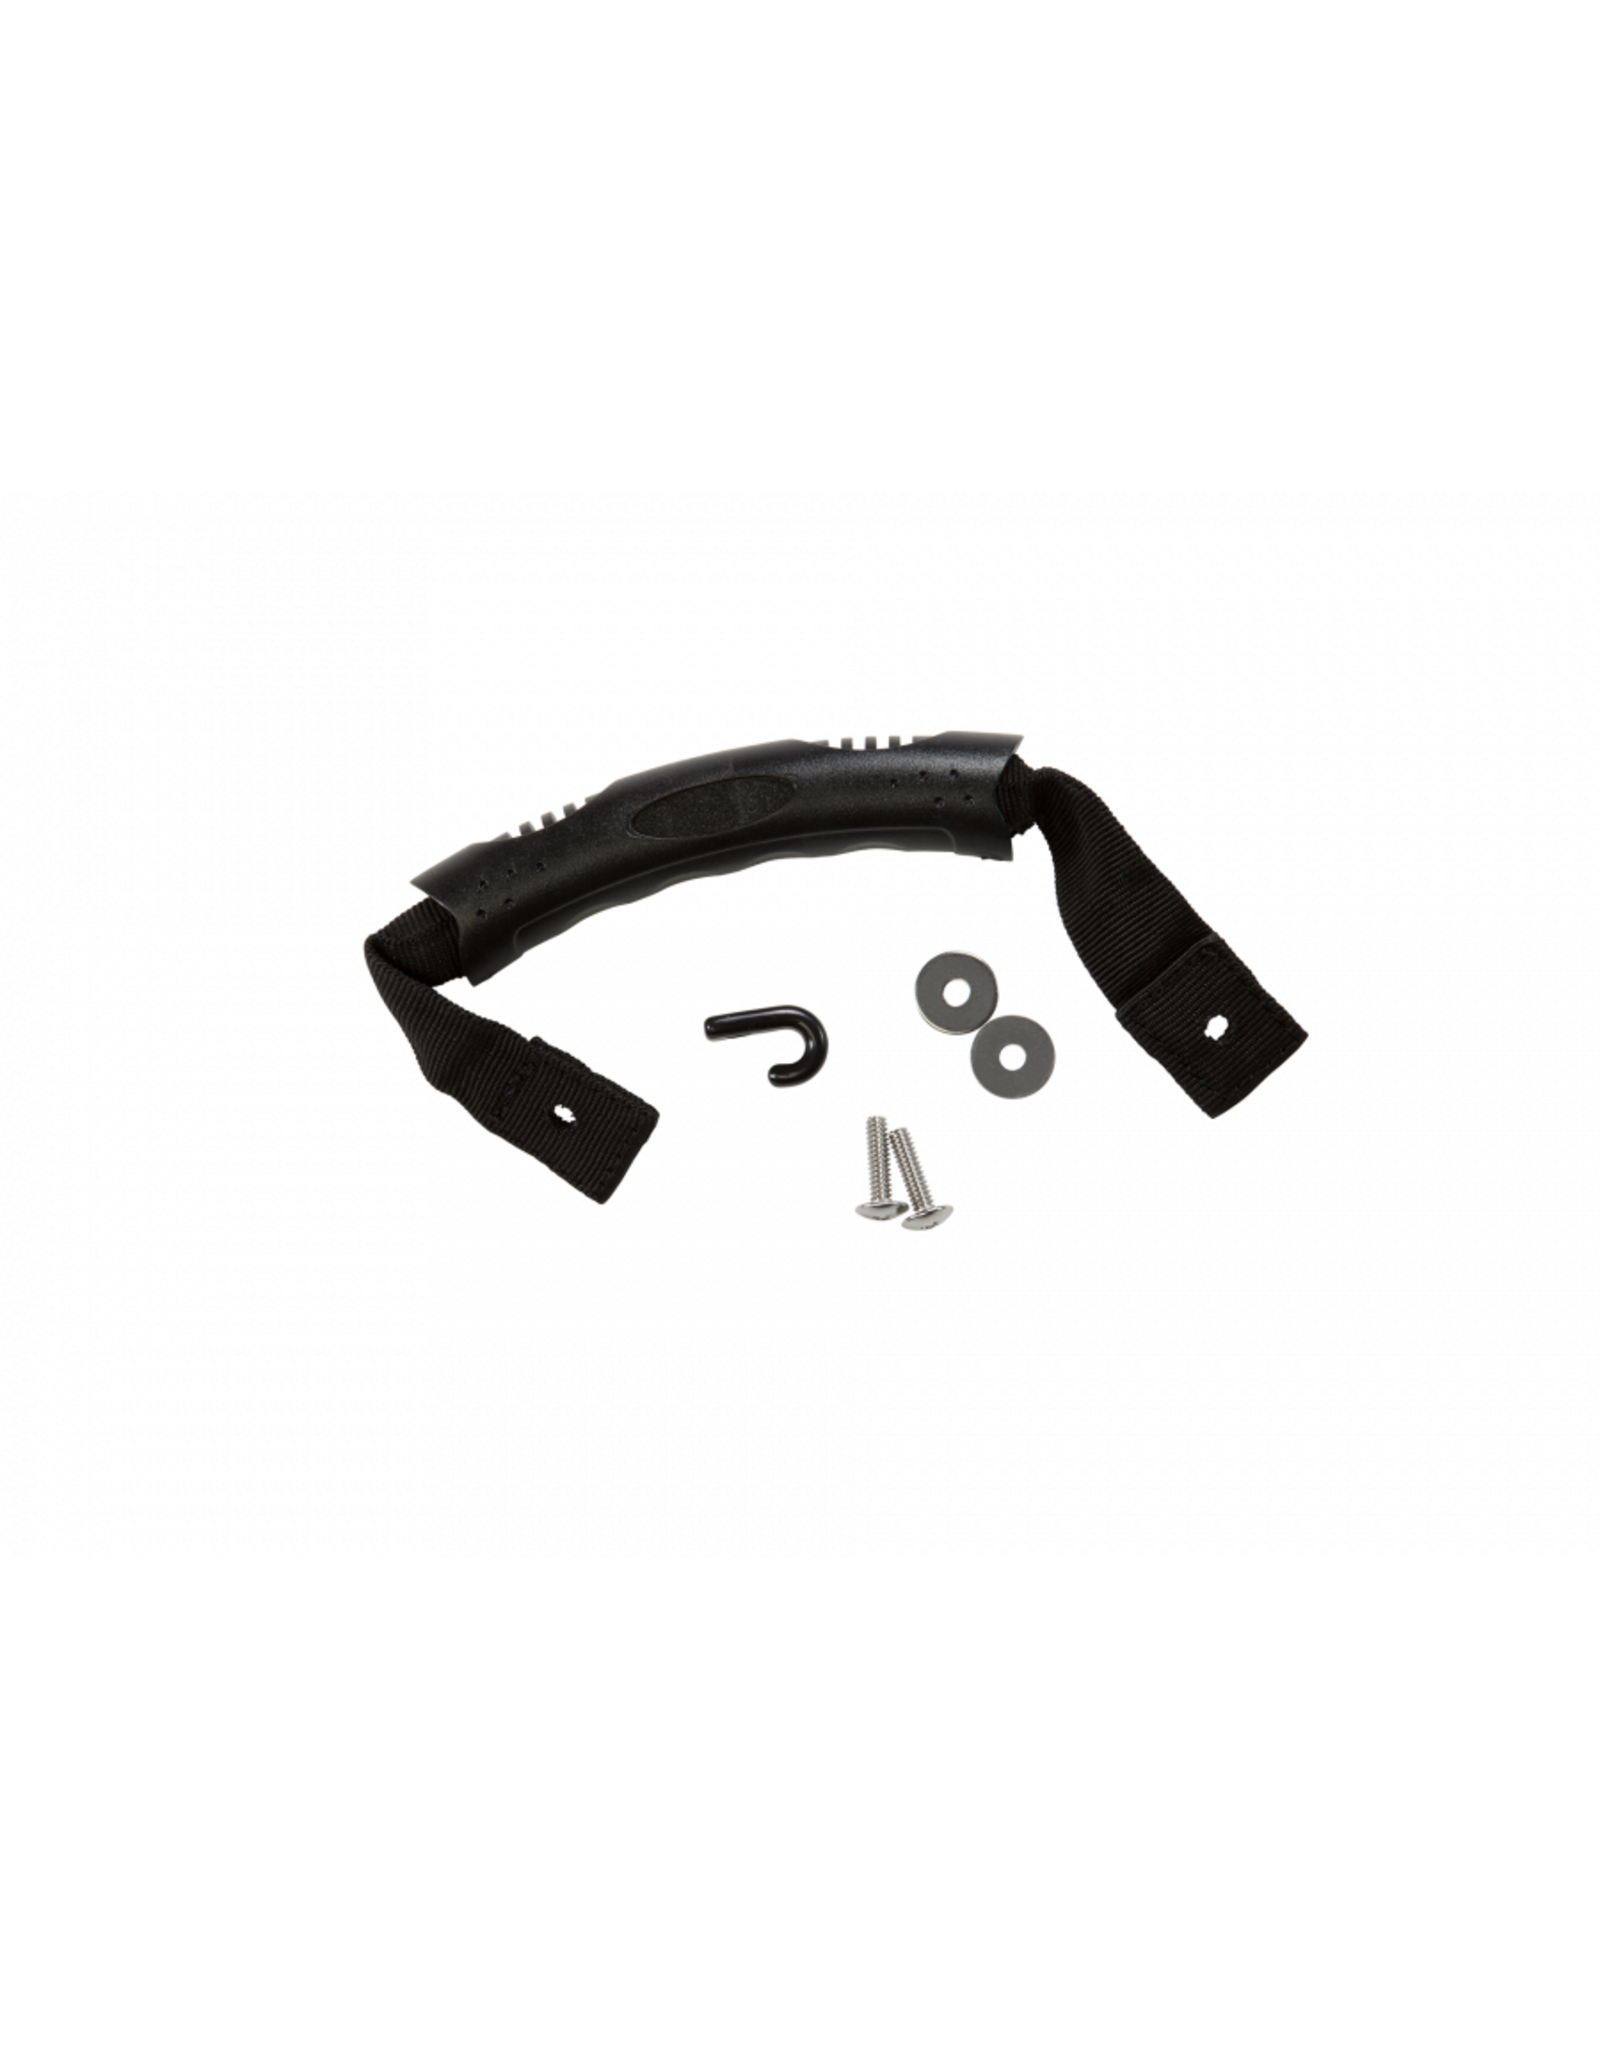 Pelican Pelican Acc. Ergonomic Carrying Handle